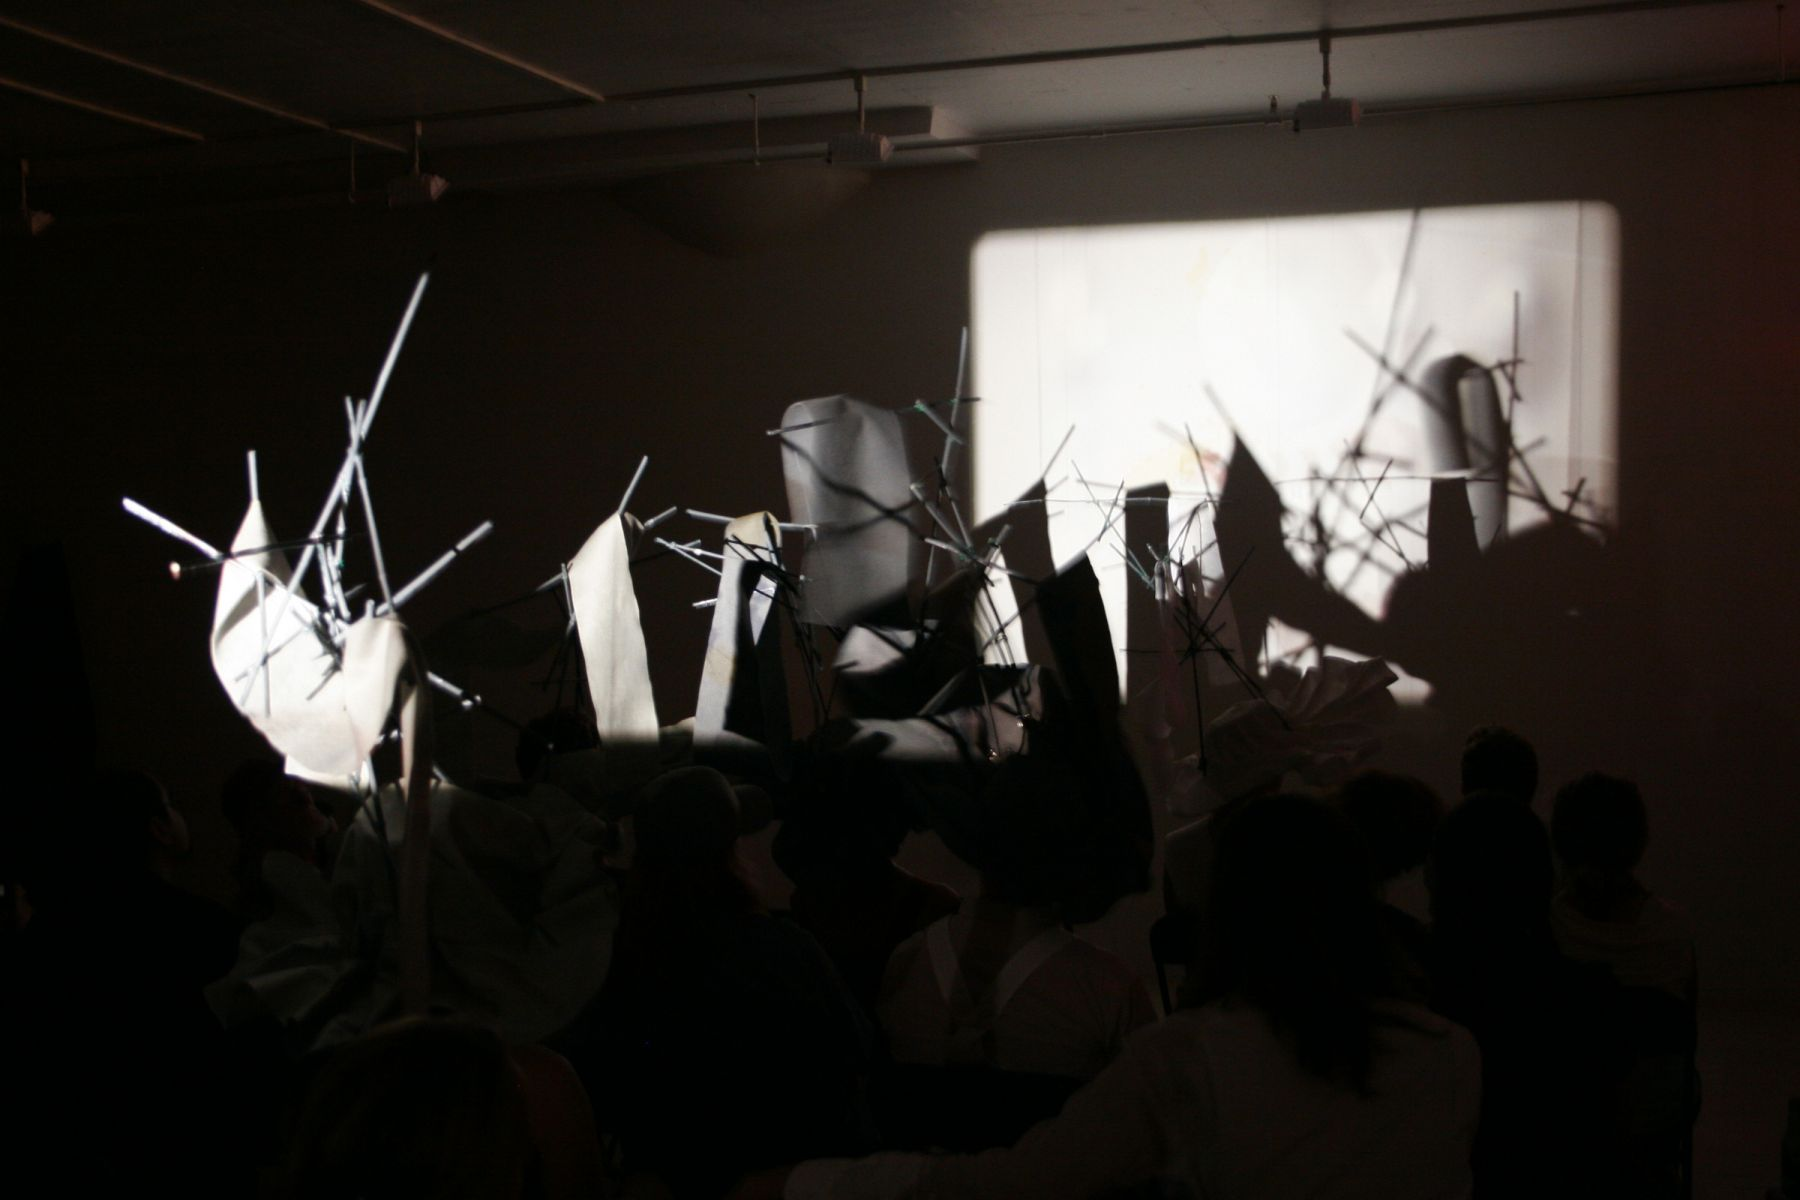 Oliver Husain, Rushes For 5 Hats, Performance view, Greene Naftali, New York, 2007